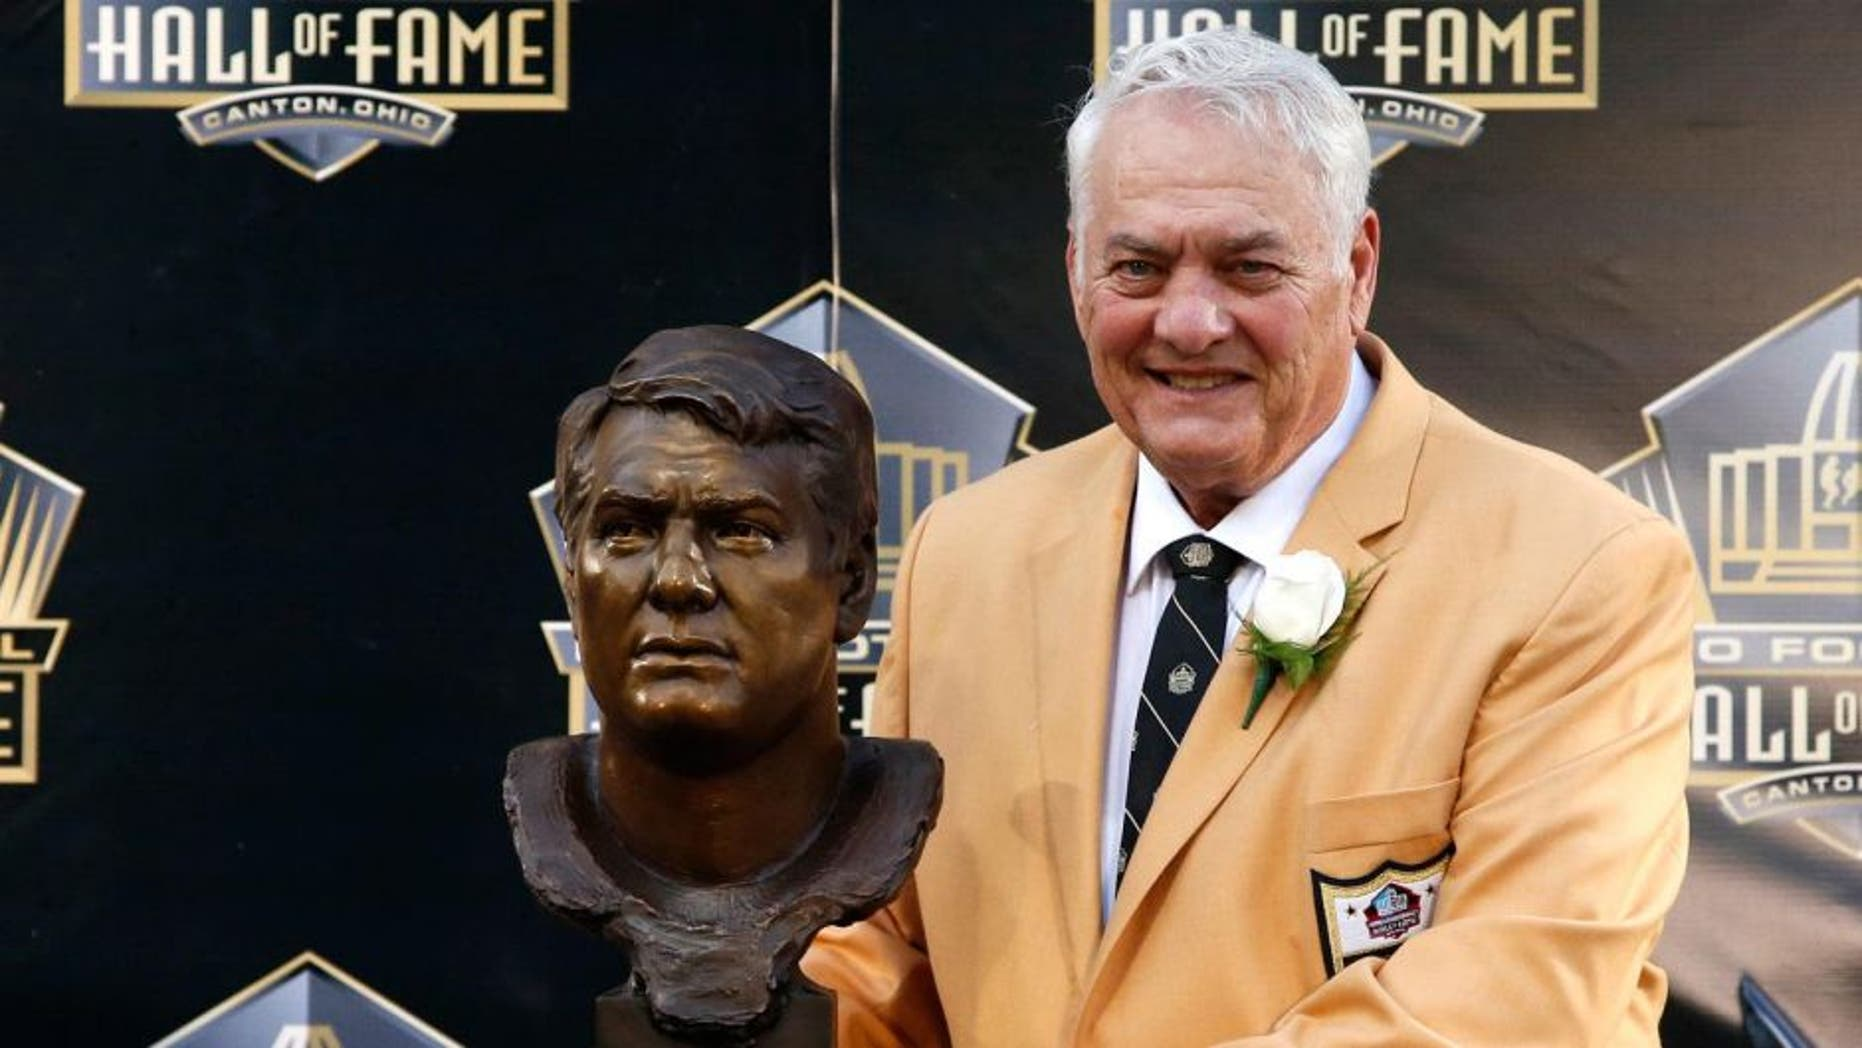 Saturday, August 8: Former Minnesota Vikings player Mick Tingelhoff poses with his bust during inductions at the Pro Football Hall of Fame in Canton, Ohio.